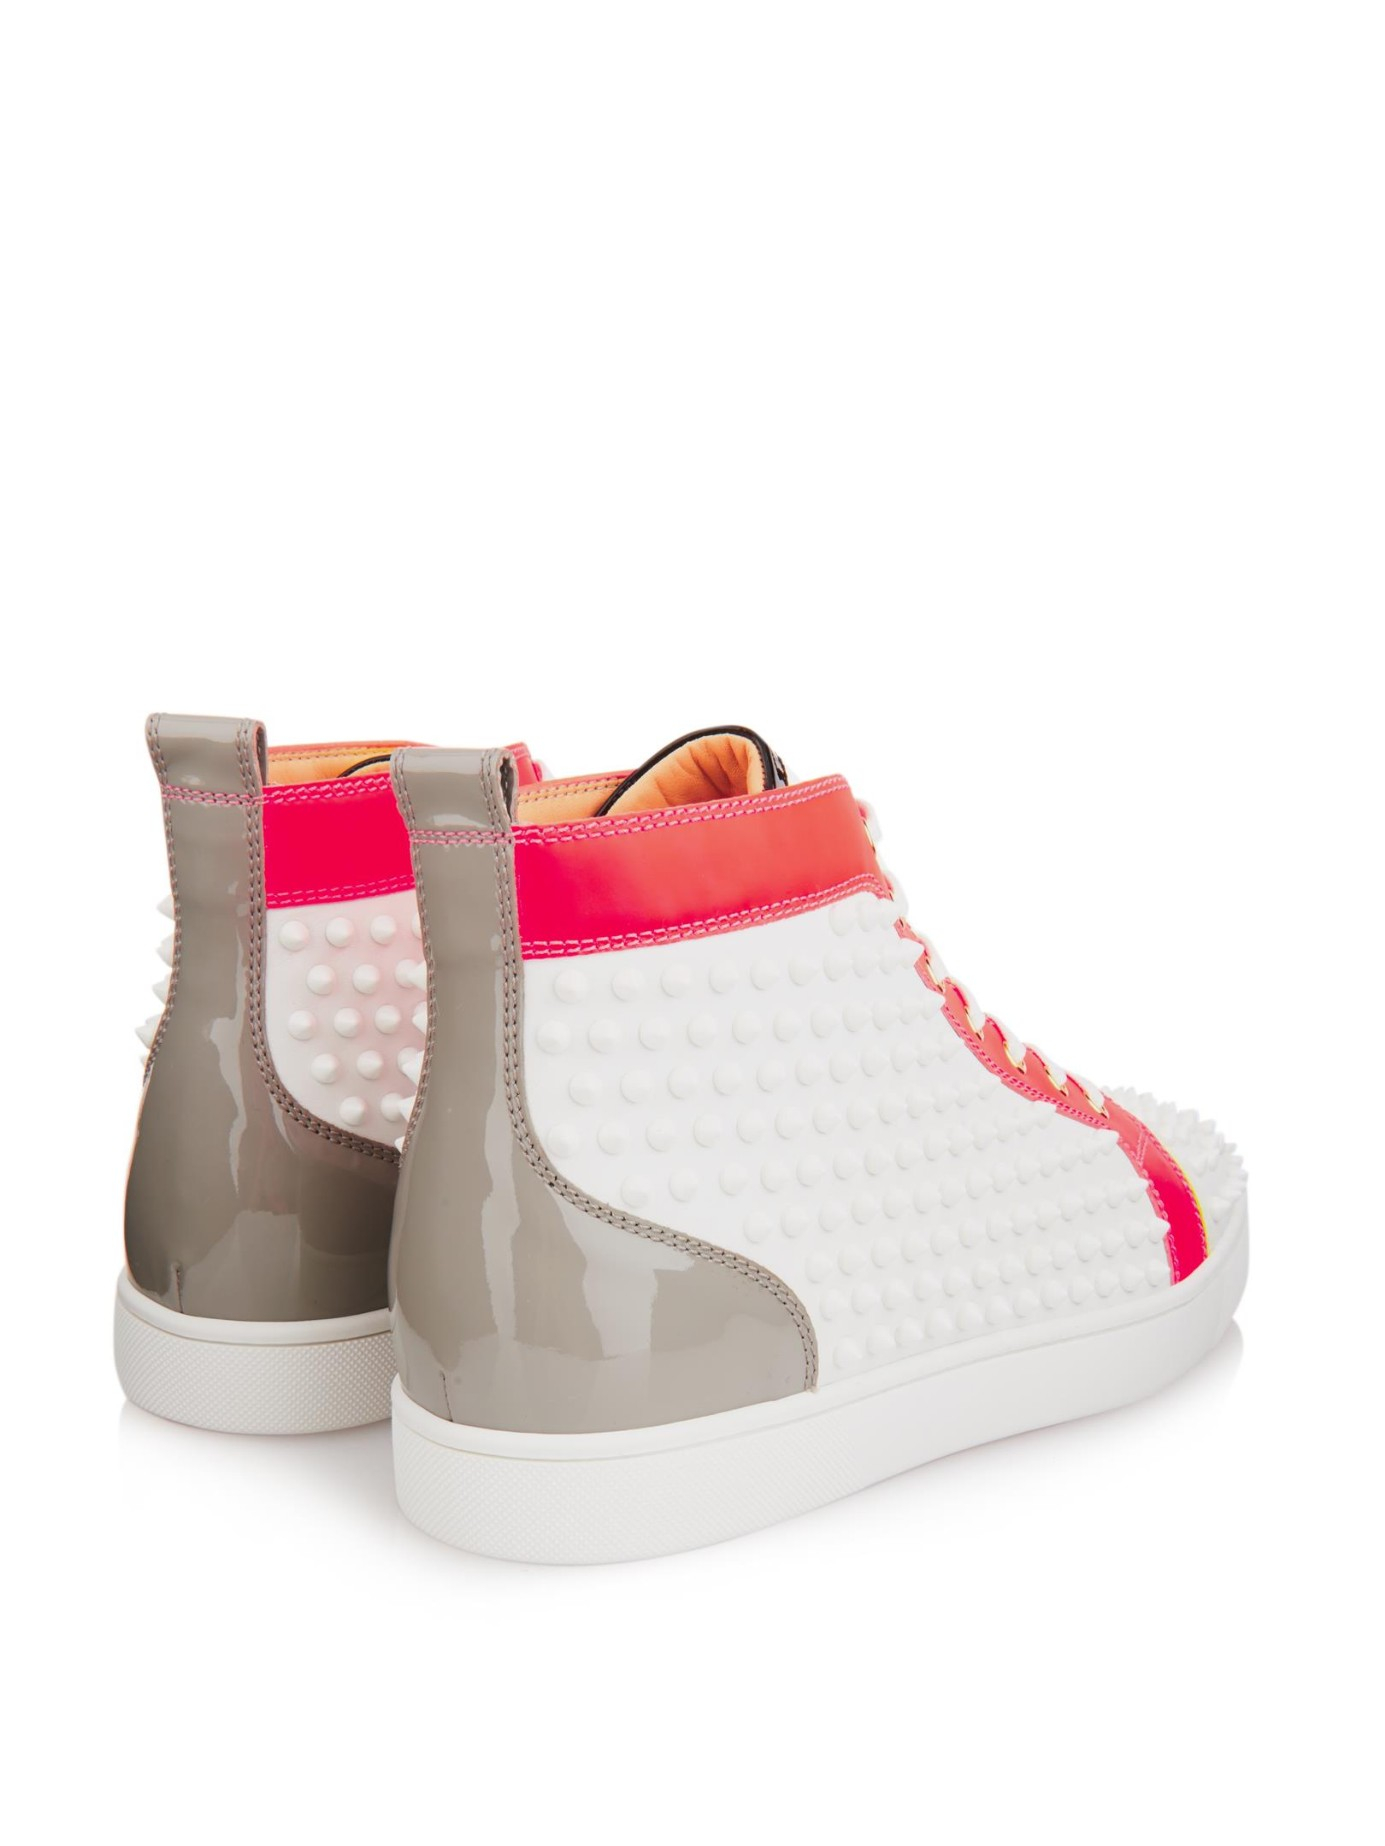 Louis spiked leather high-top trainers Christian Louboutin ze3Va4eM